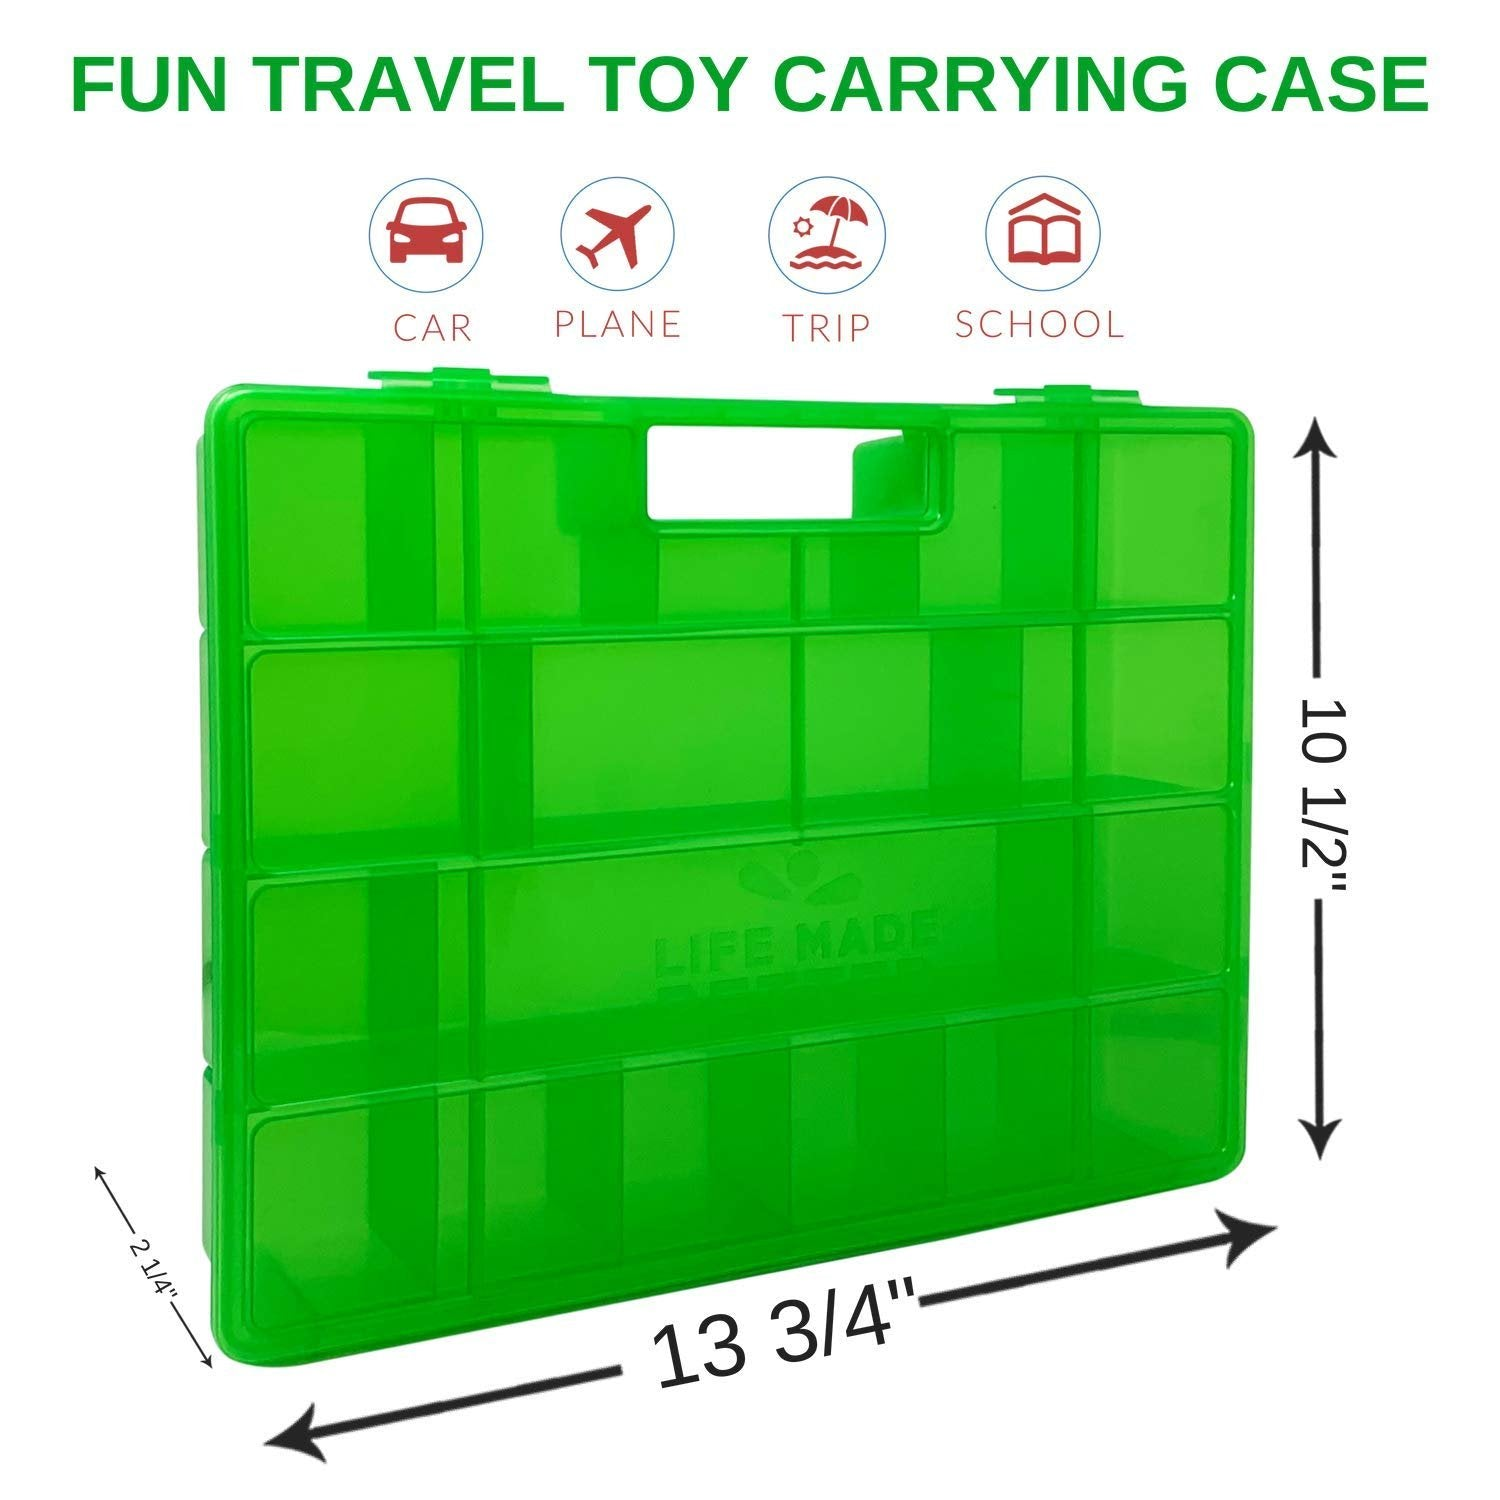 Life Made Better, Toy Storage Carrying Box for Toy Storage & Travel Case Solutions, Compatible with Splashlings, Figures Playset Green Organizer Accessory Created by LMB